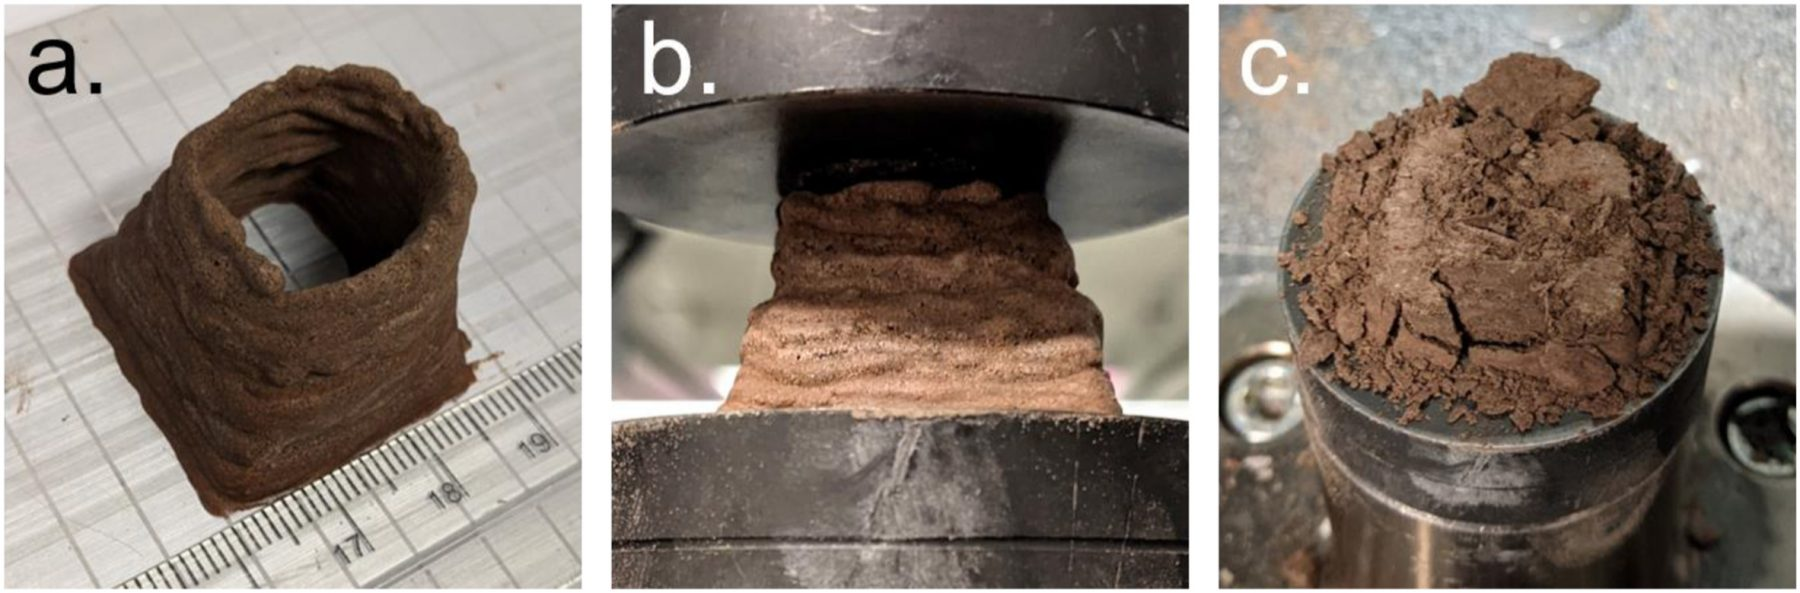 a) A biocomposite sample after manufacture, b) during a compression test, and c) after a compression test. Credit: Aled D. Roberts et al. / Materials Today Bio, 2021